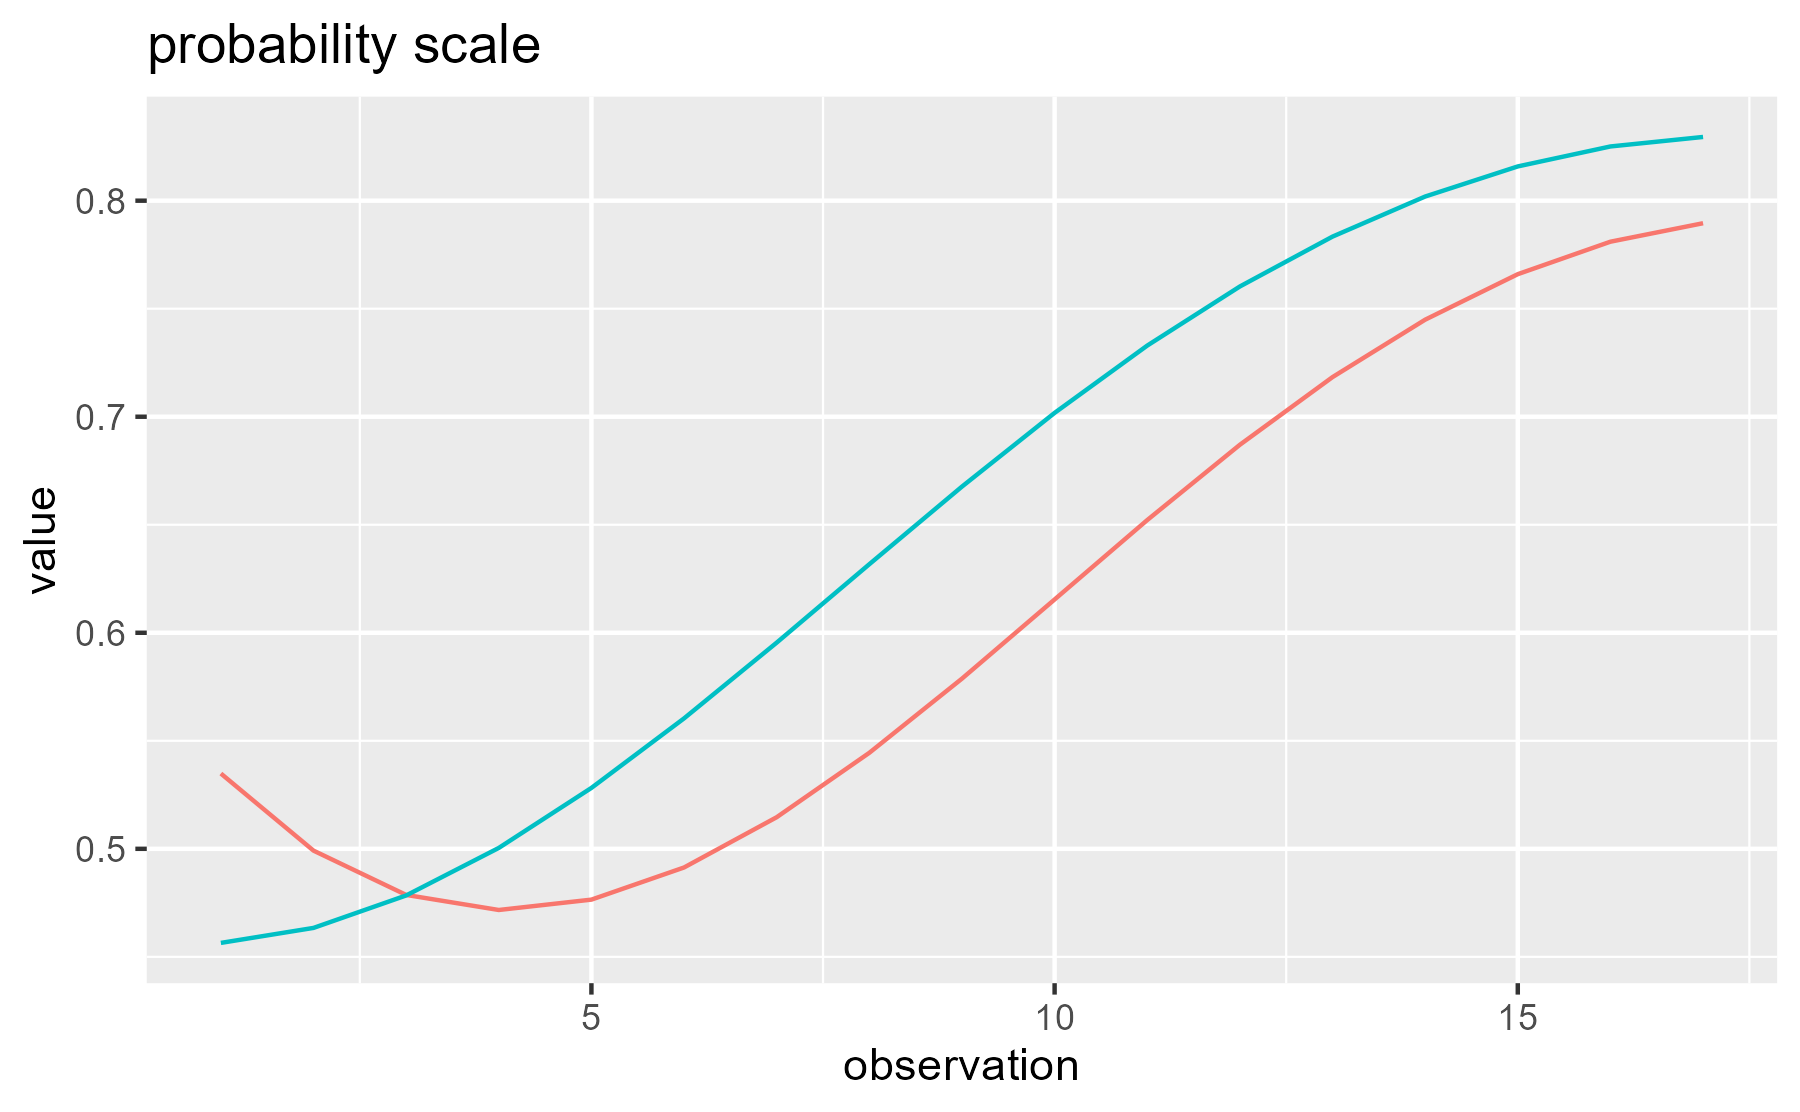 Comparison of the growth curves in logit scale and probability scale